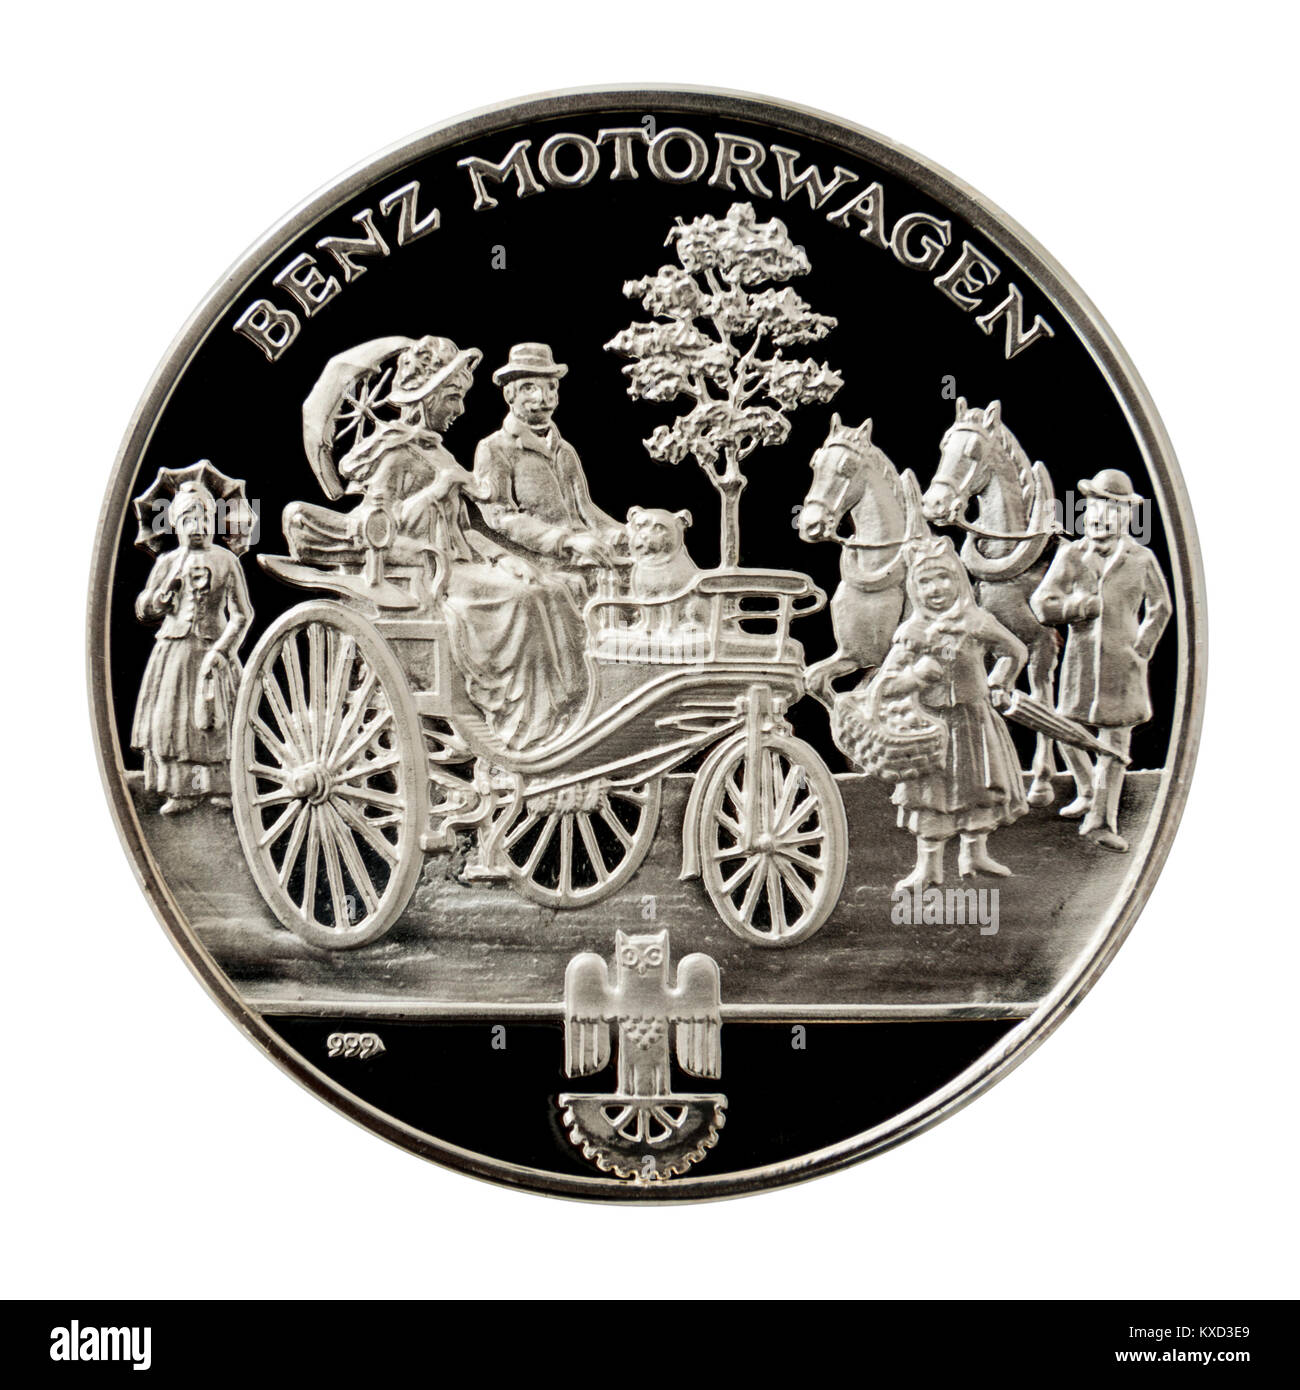 99.9% Proof Silver Medallion featuring Karl Benz on one side and his Benz Patent Motorcar from 1885 on the other - Stock Image